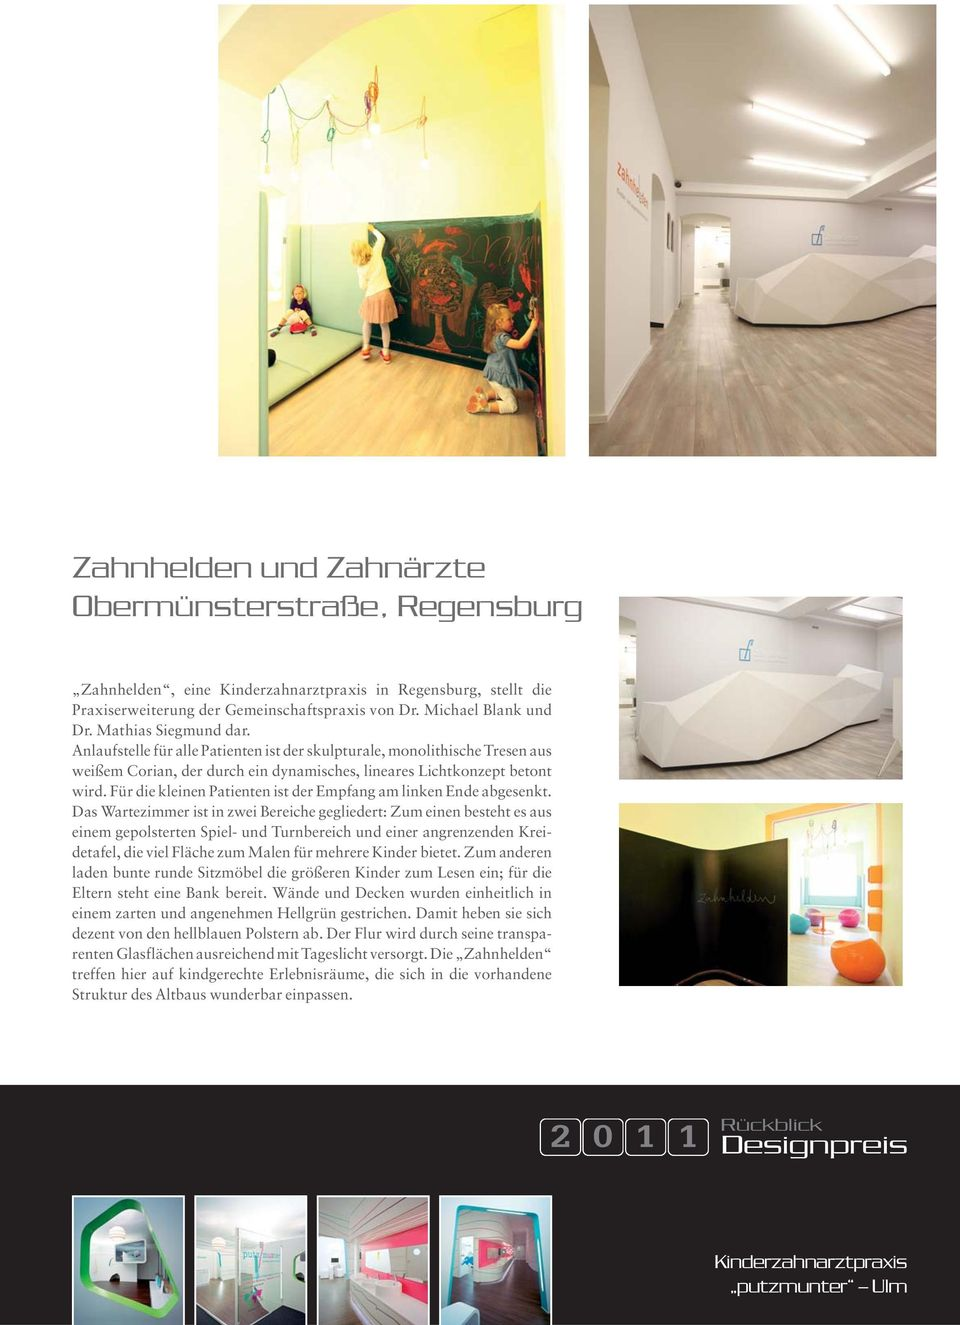 gewinner designpreis deutschlands sch nste zahnarztpraxis pdf. Black Bedroom Furniture Sets. Home Design Ideas